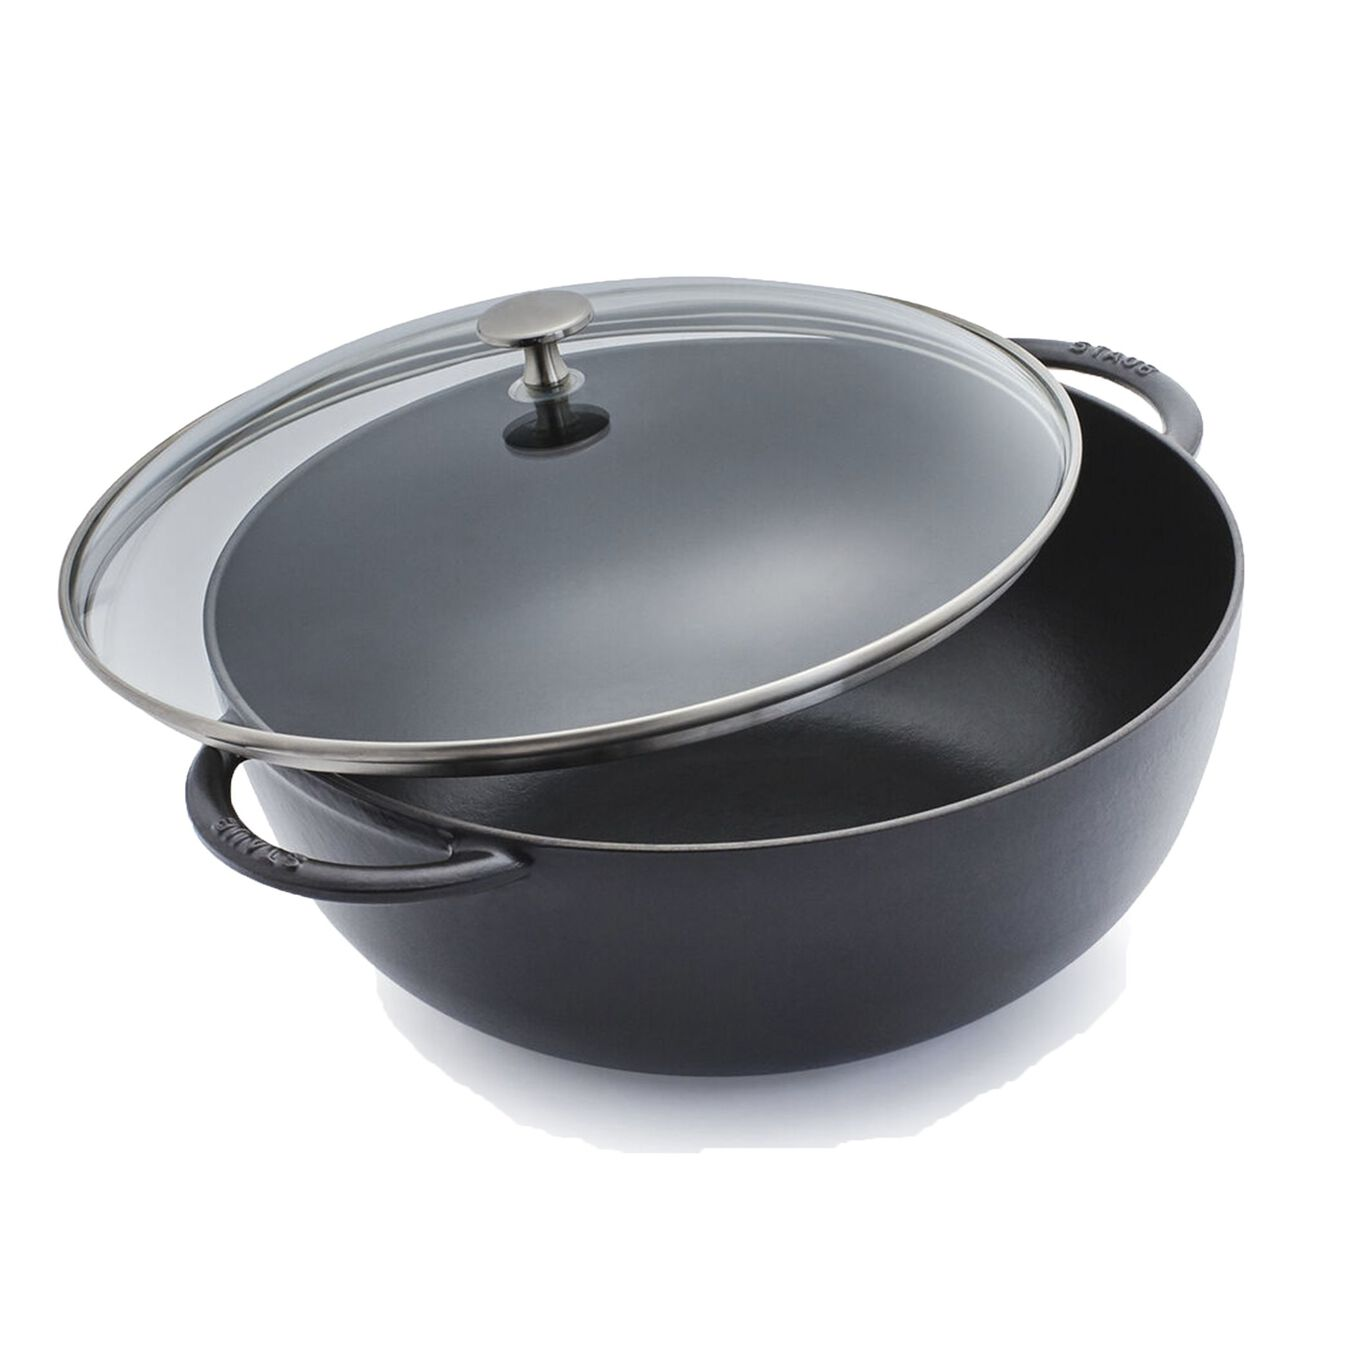 32 cm / 12.5 inch Wok, black - Visual Imperfections,,large 1